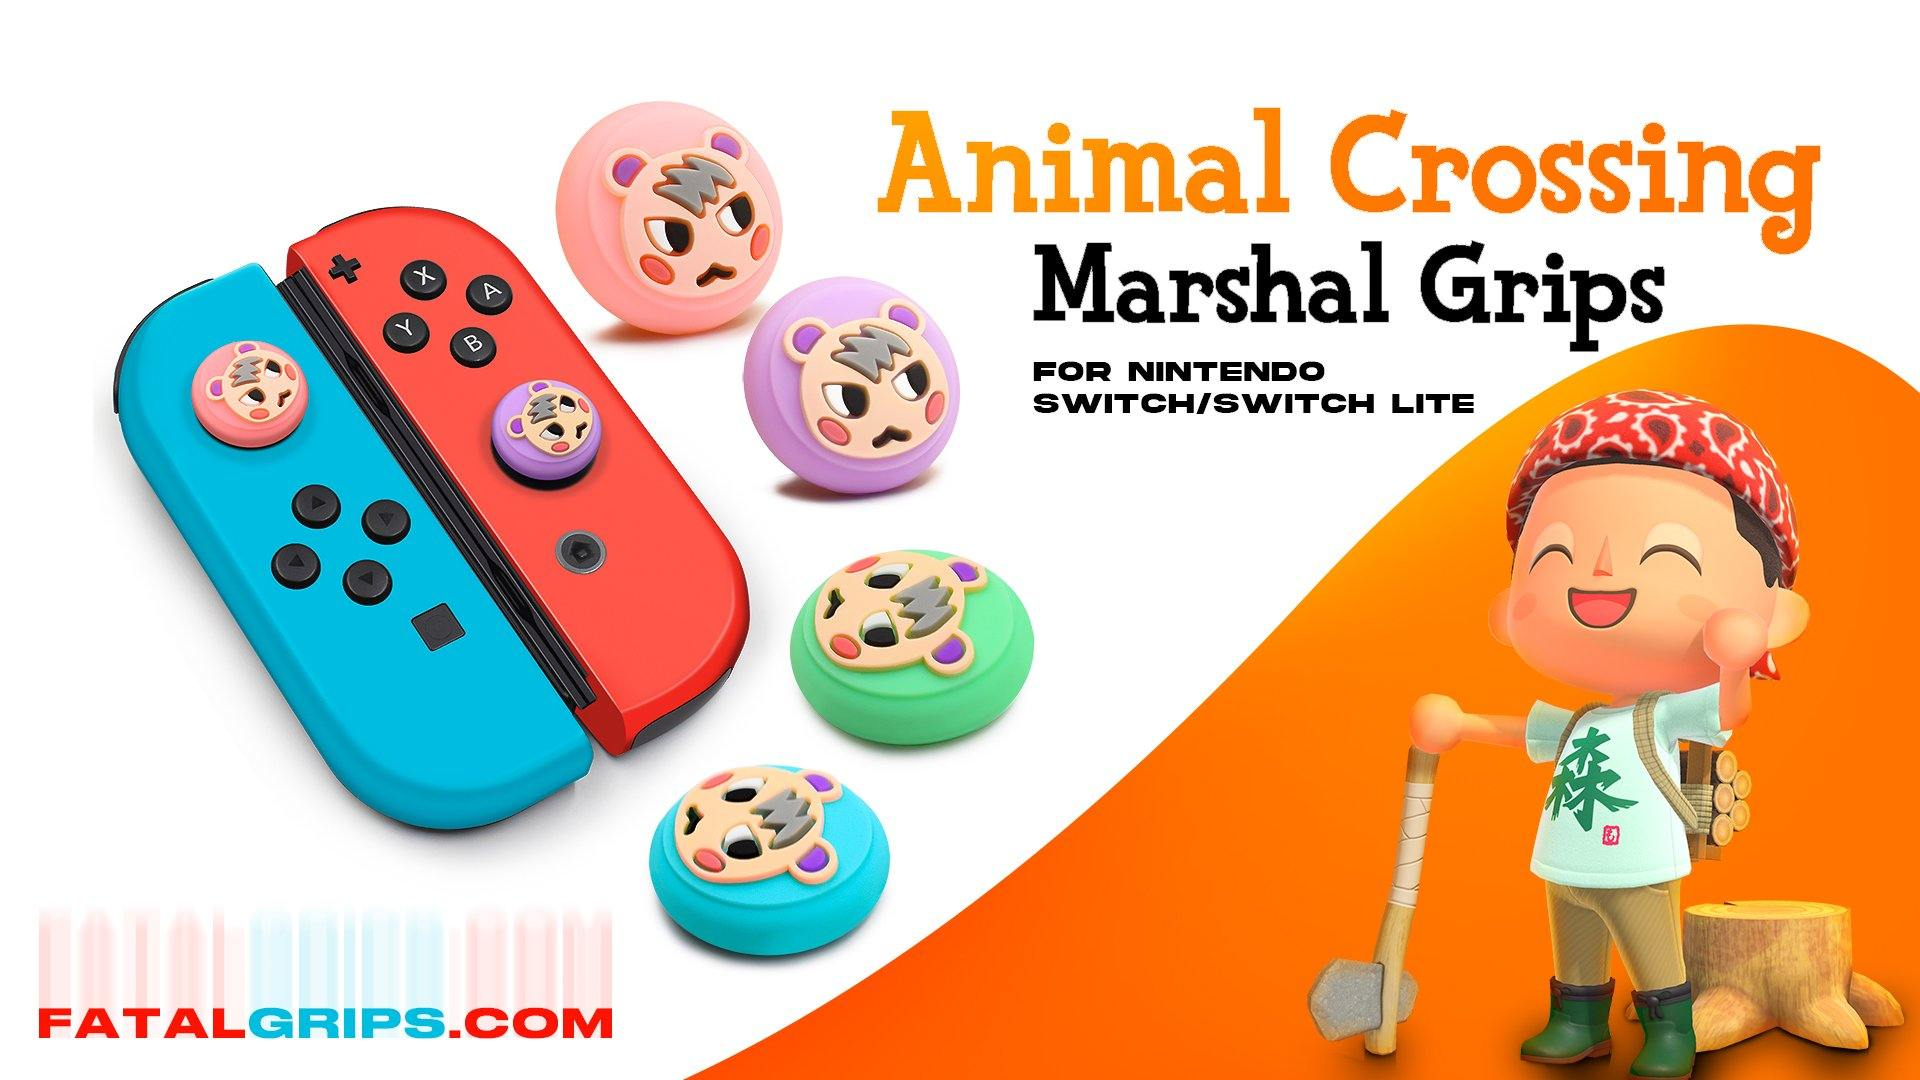 Animal Crossing Marshal Grips - Fatal Grips